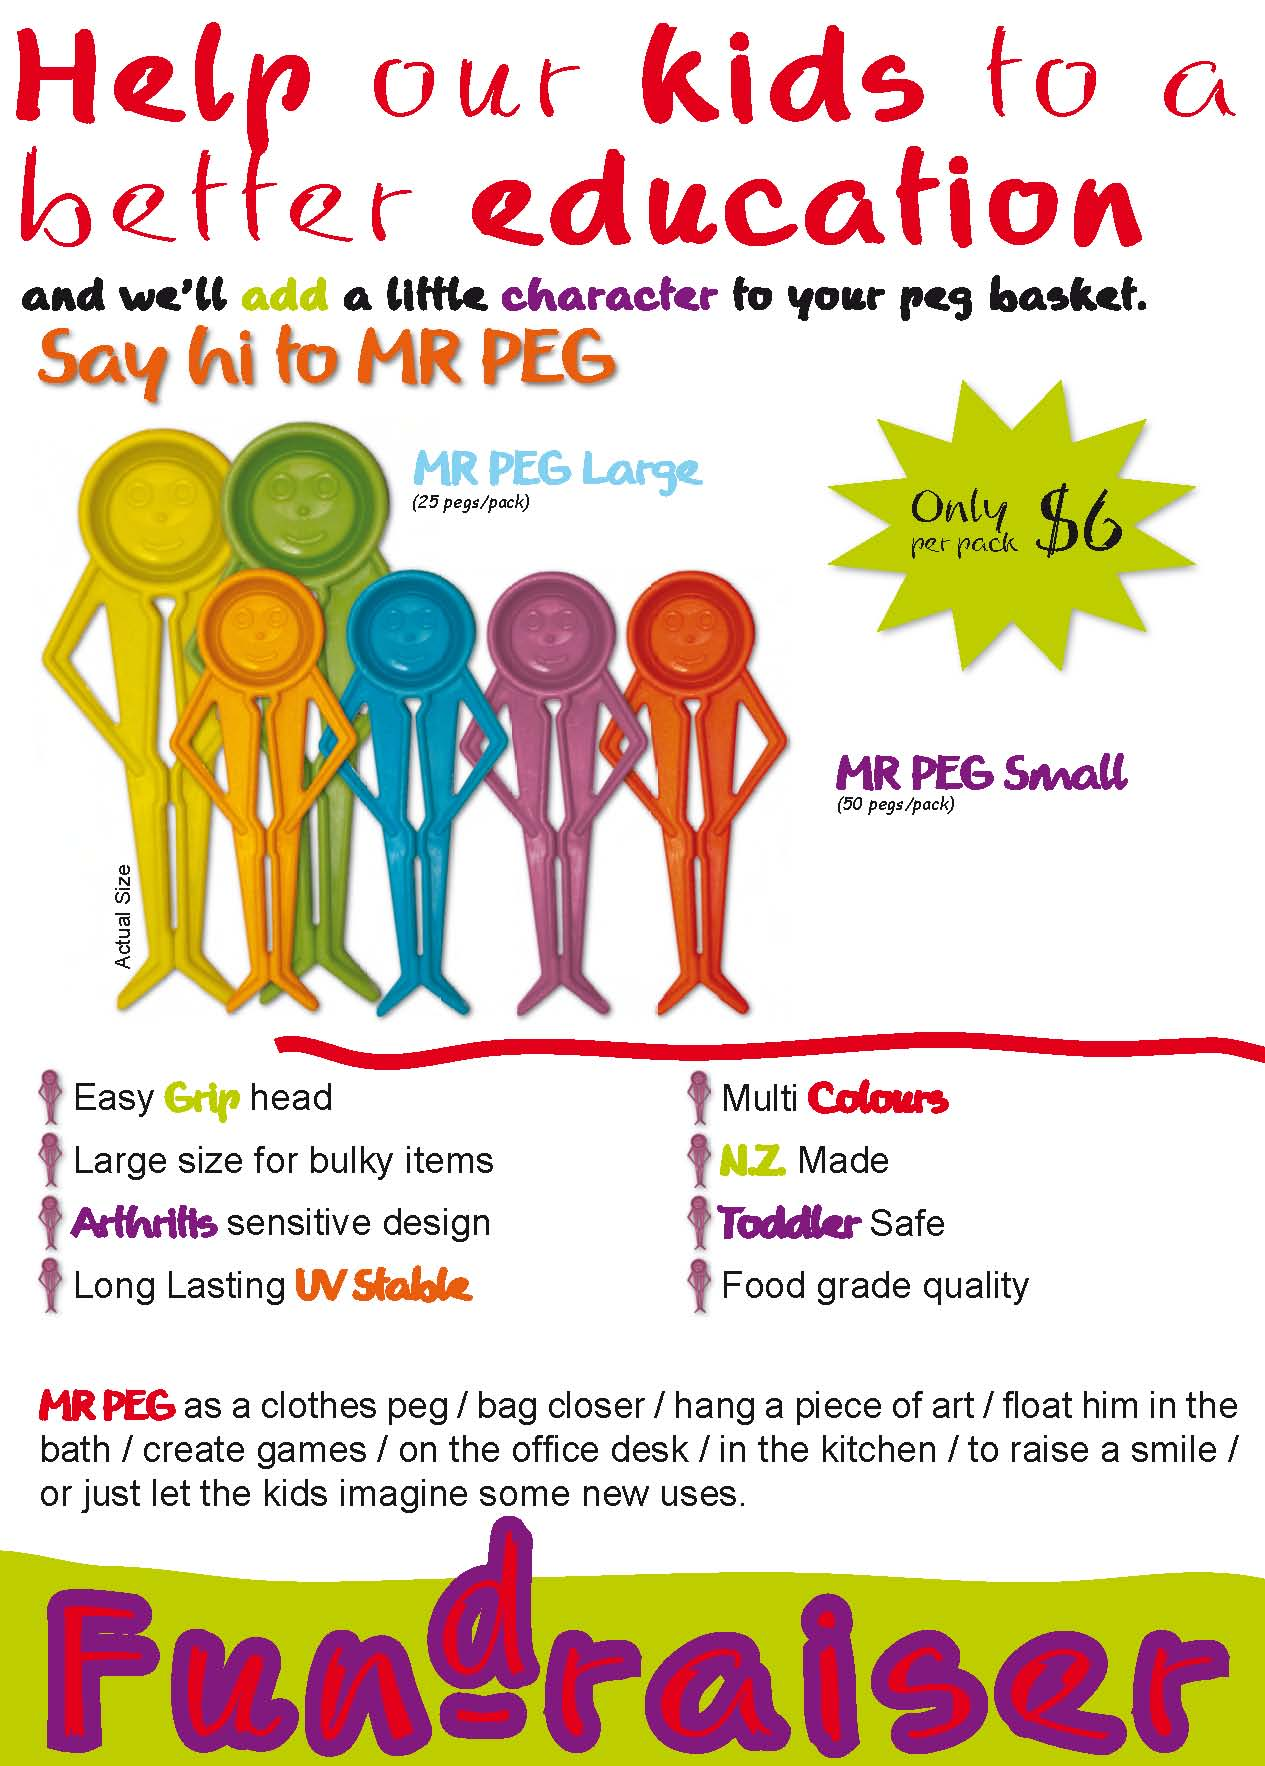 Fundraising with Mr Peg PlastiClip Products Home of Mr Peg – Free Fundraising Flyer Templates